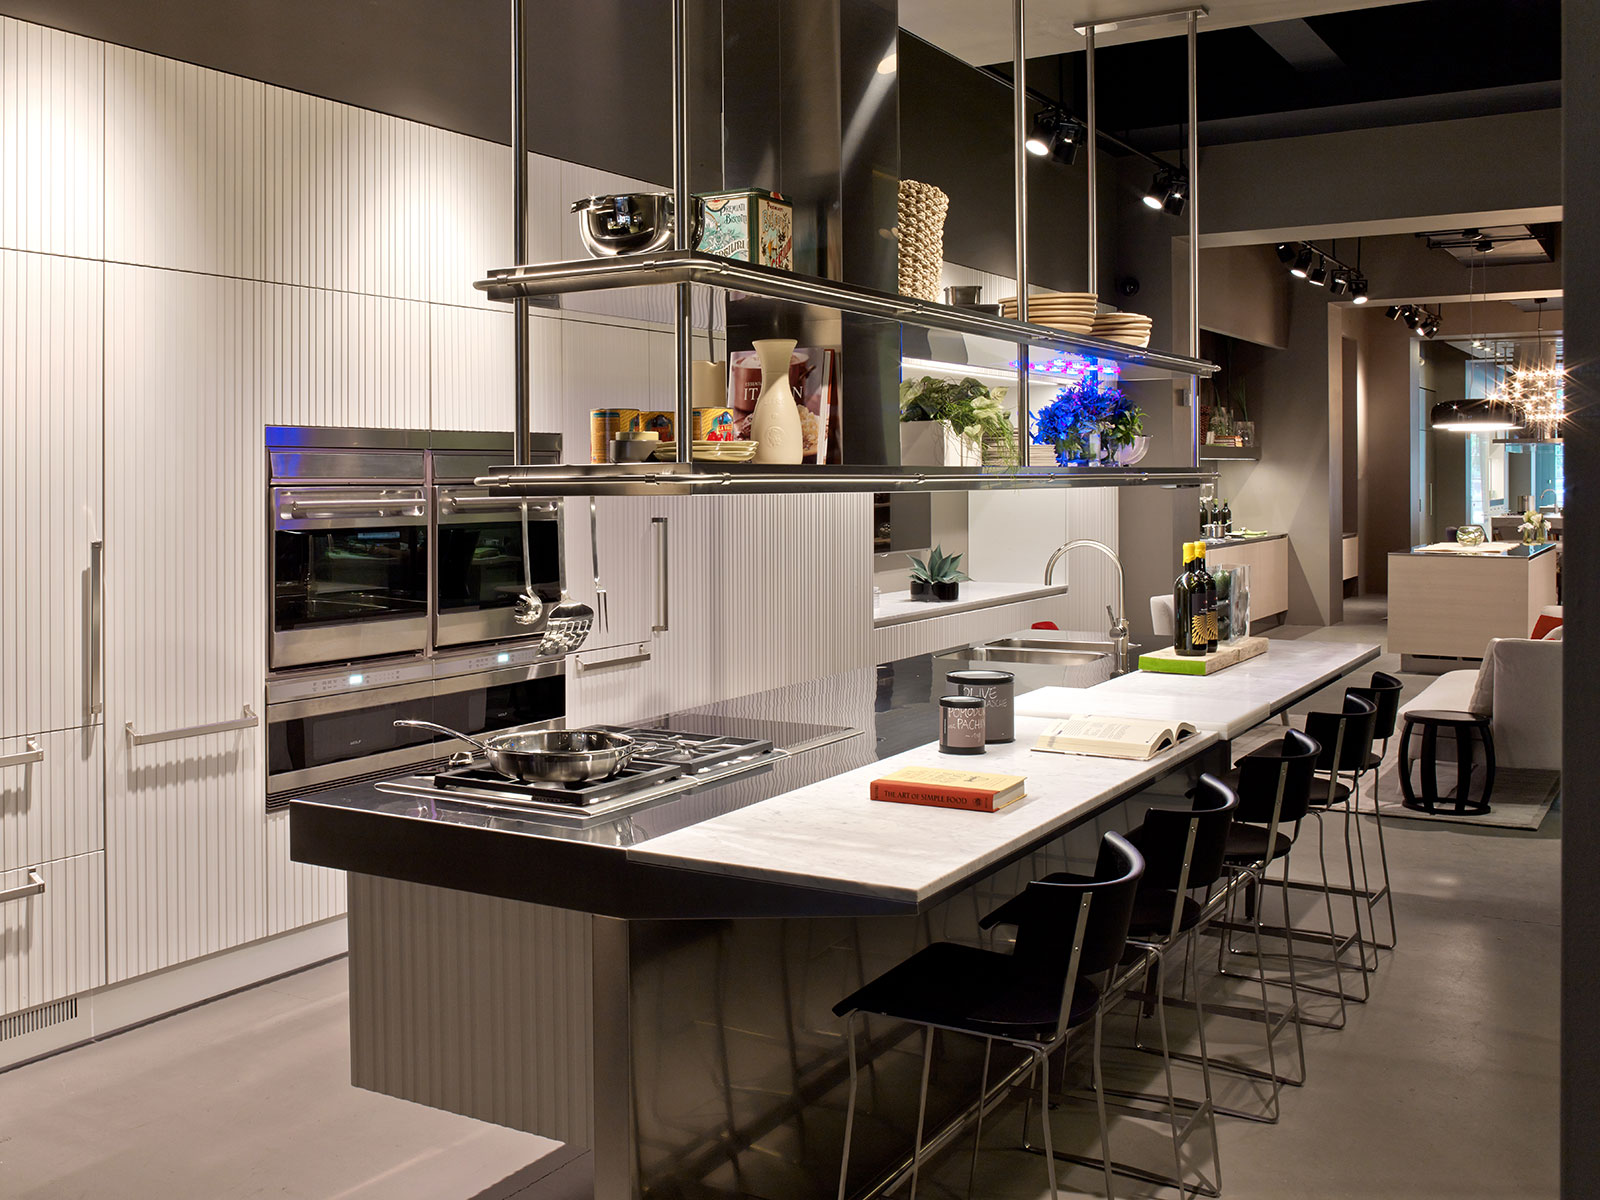 Arclinea-NYC-55-2.jpg